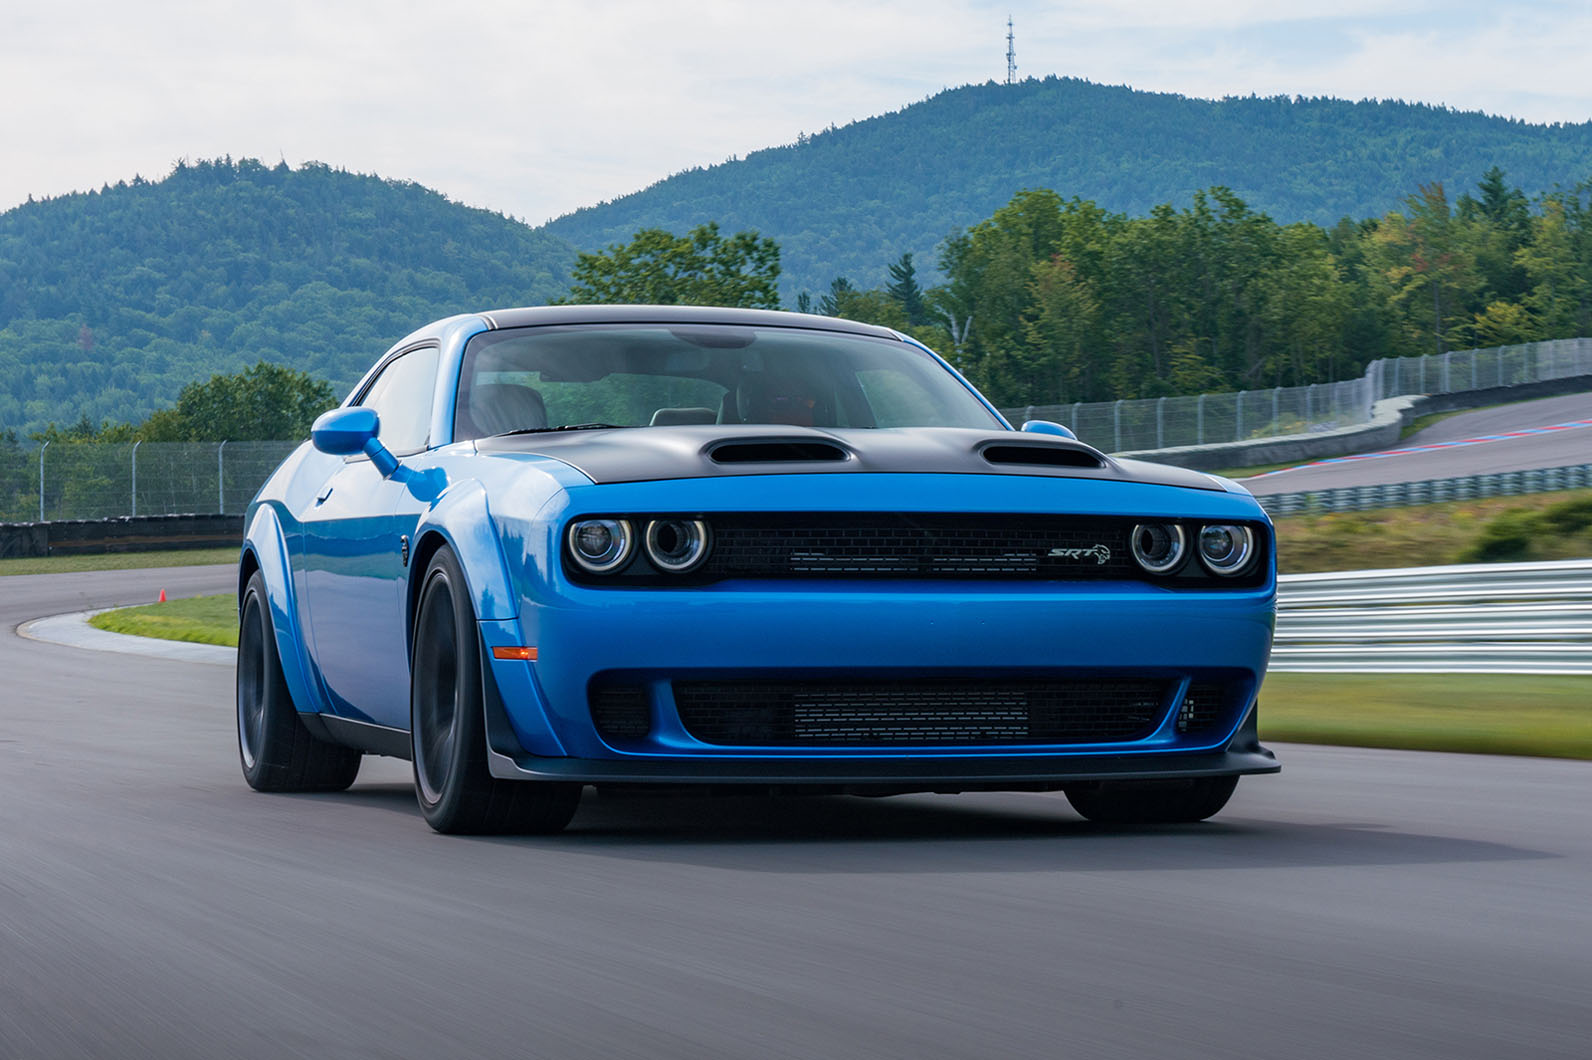 Dodge Challenger Srt Hellcat Redeye Widebody 2018 Review Autocar